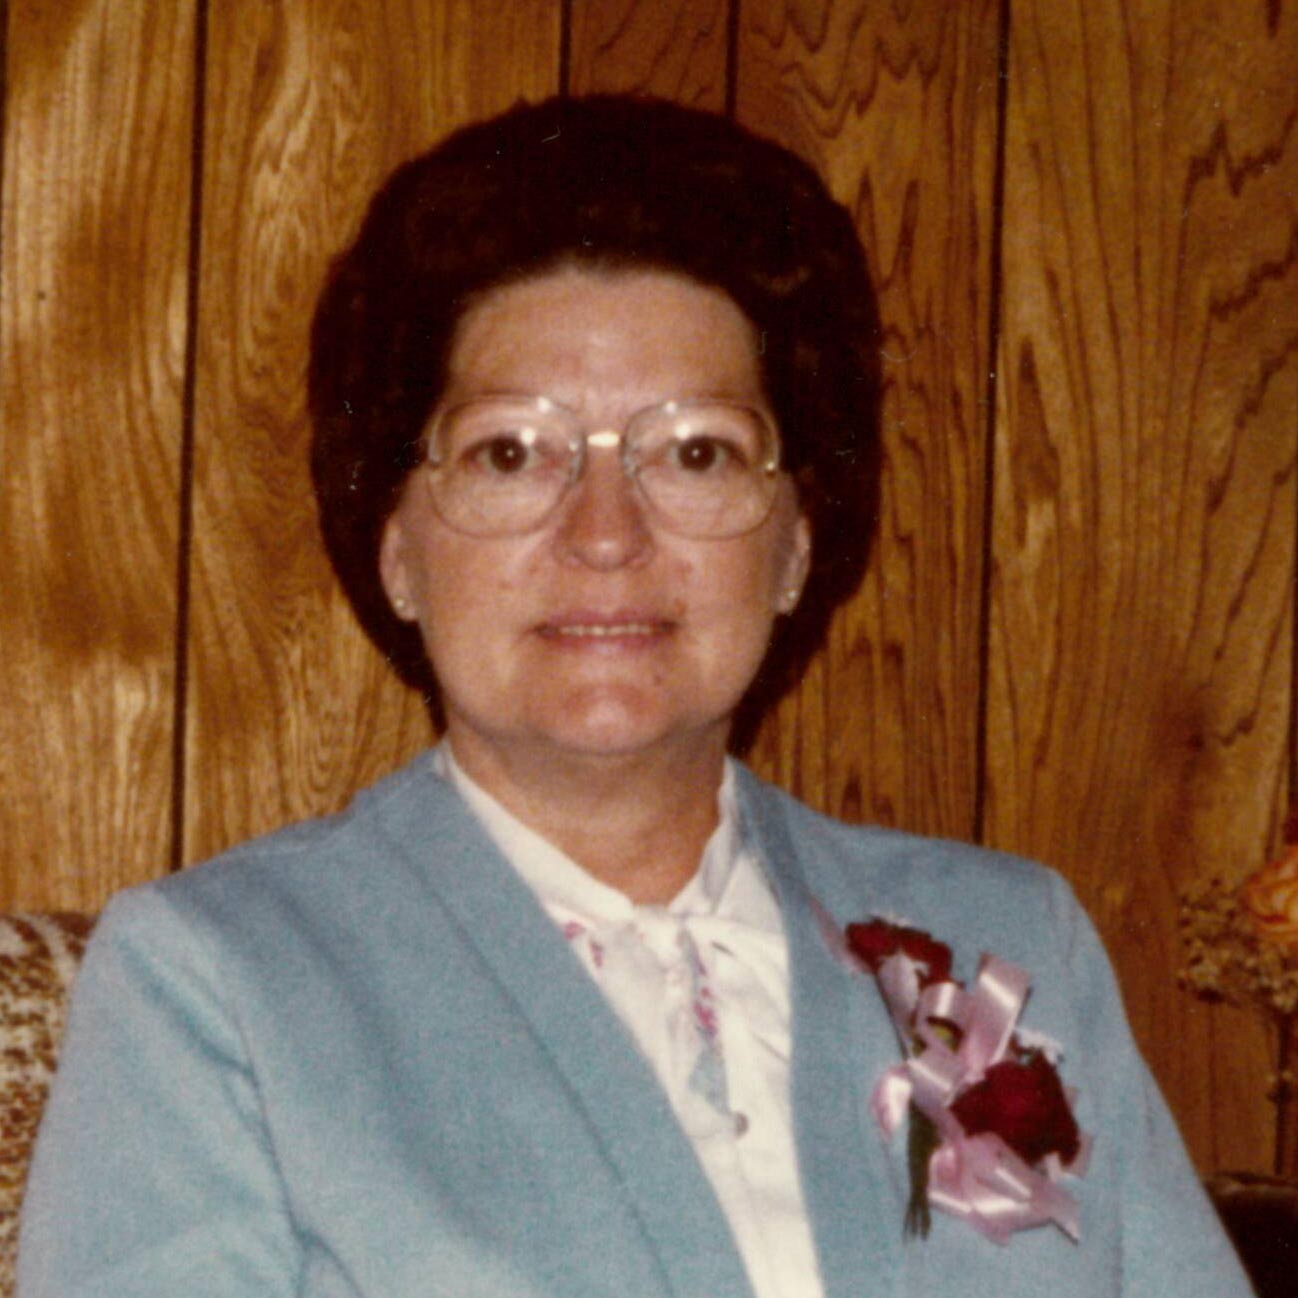 Mary Ann (Smith) Pyell, 89 years of age, of Lincoln, Nebraska (formerly of Stamford)